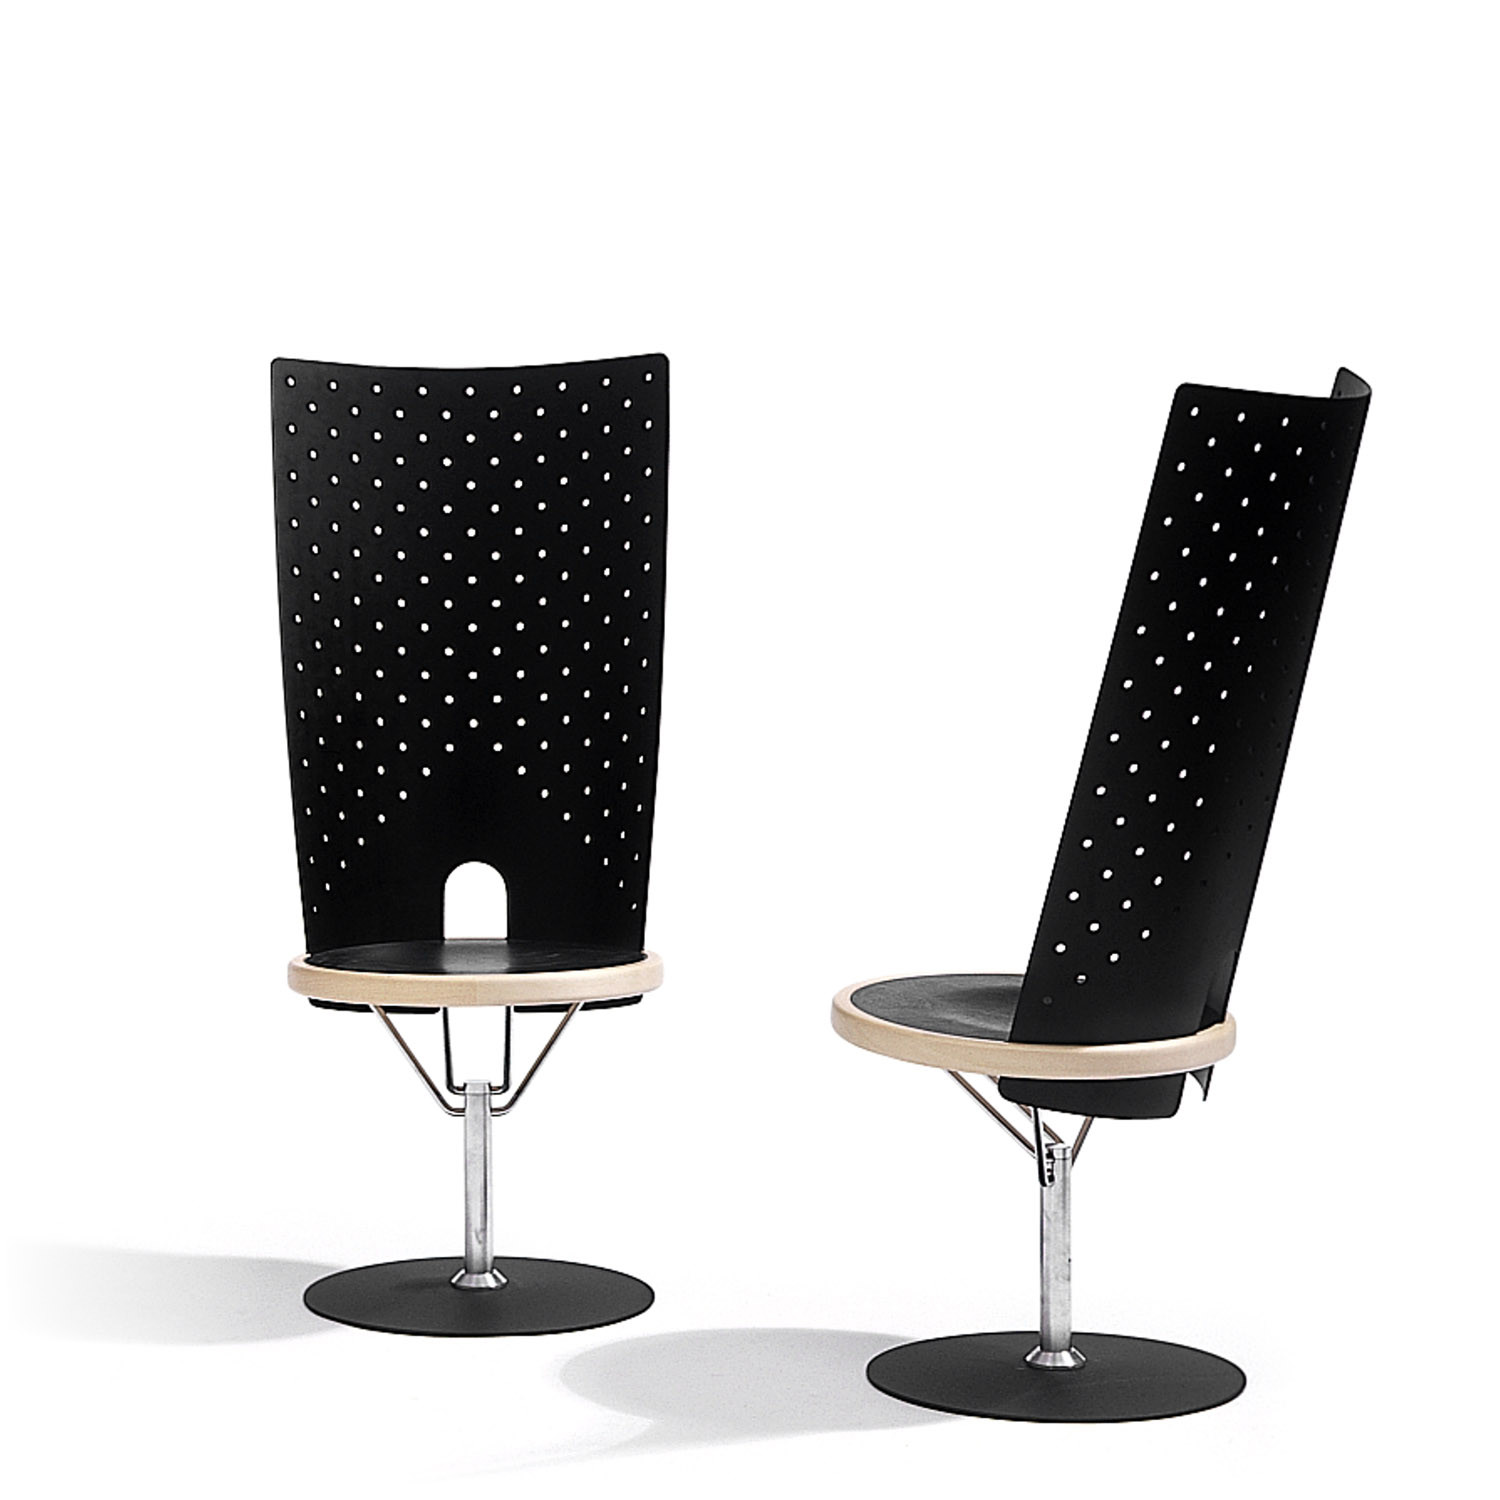 Hövding Swivel Chairs from Borge Lindau